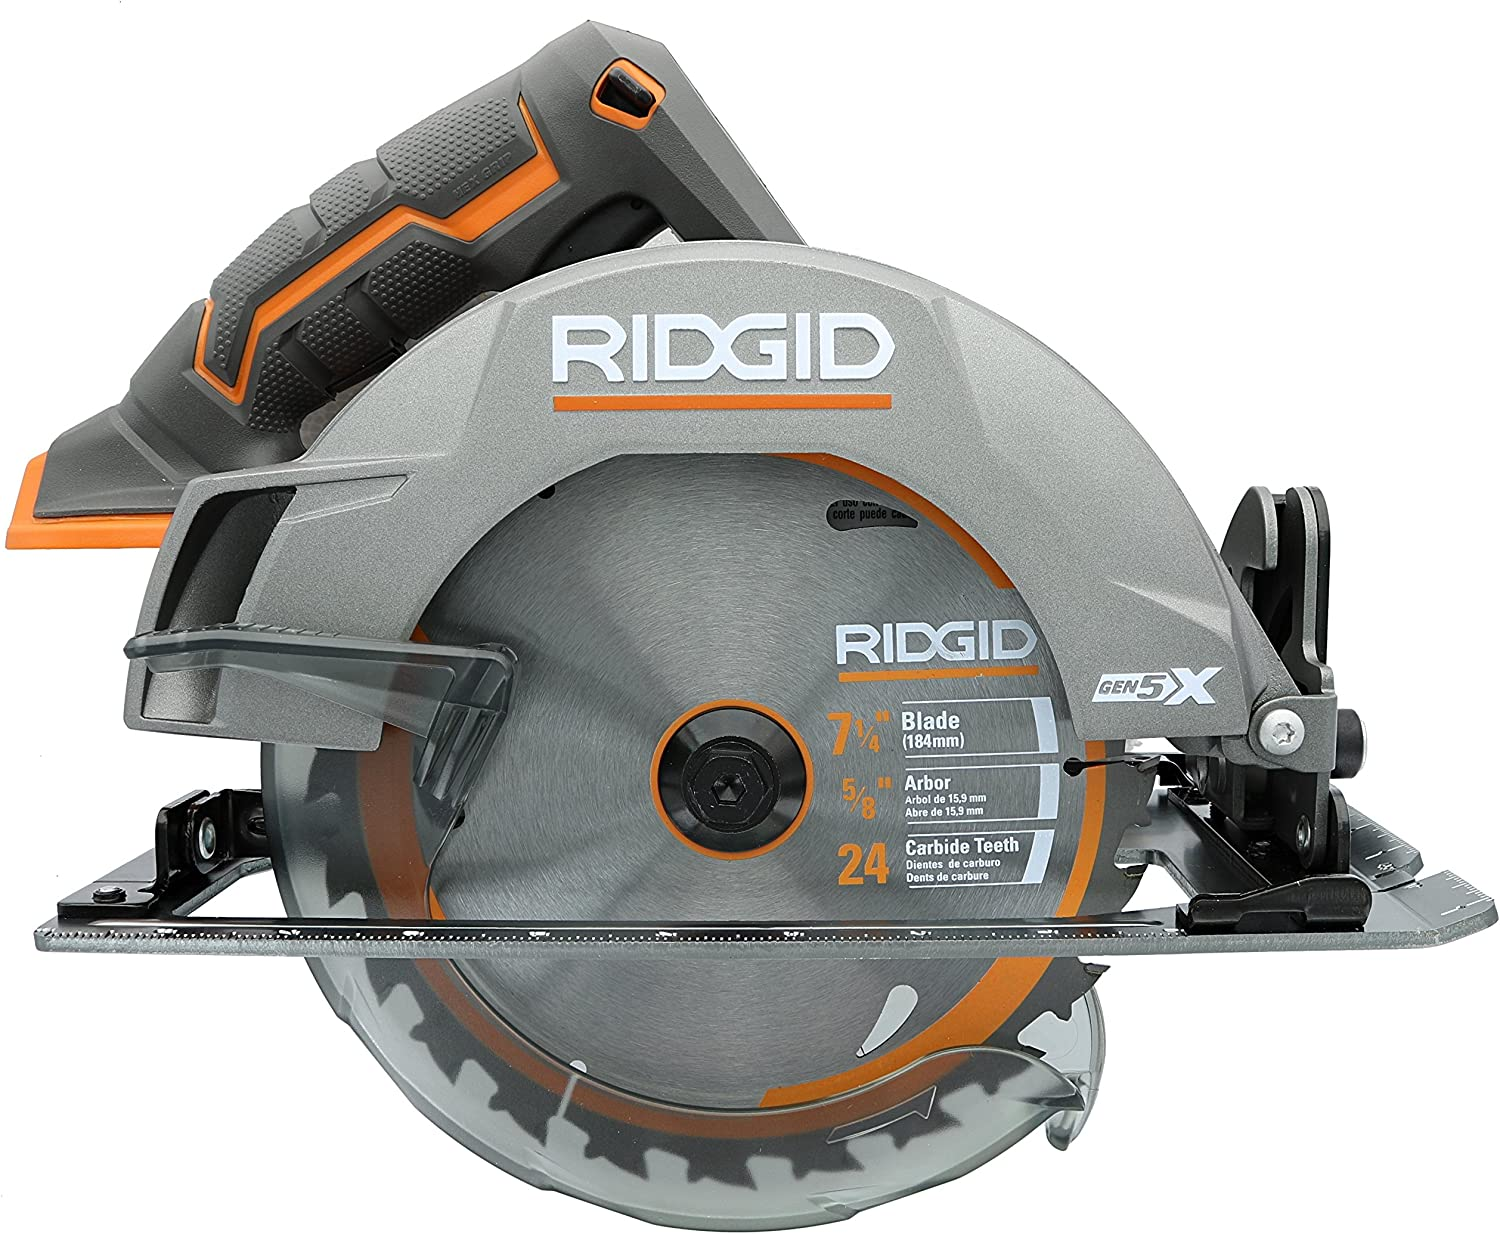 Ridgid Genuine OEM R8652 Gen5X Cordless 18V Lithium Ion Brush Motor 7 1/4 Inch Circular Saw